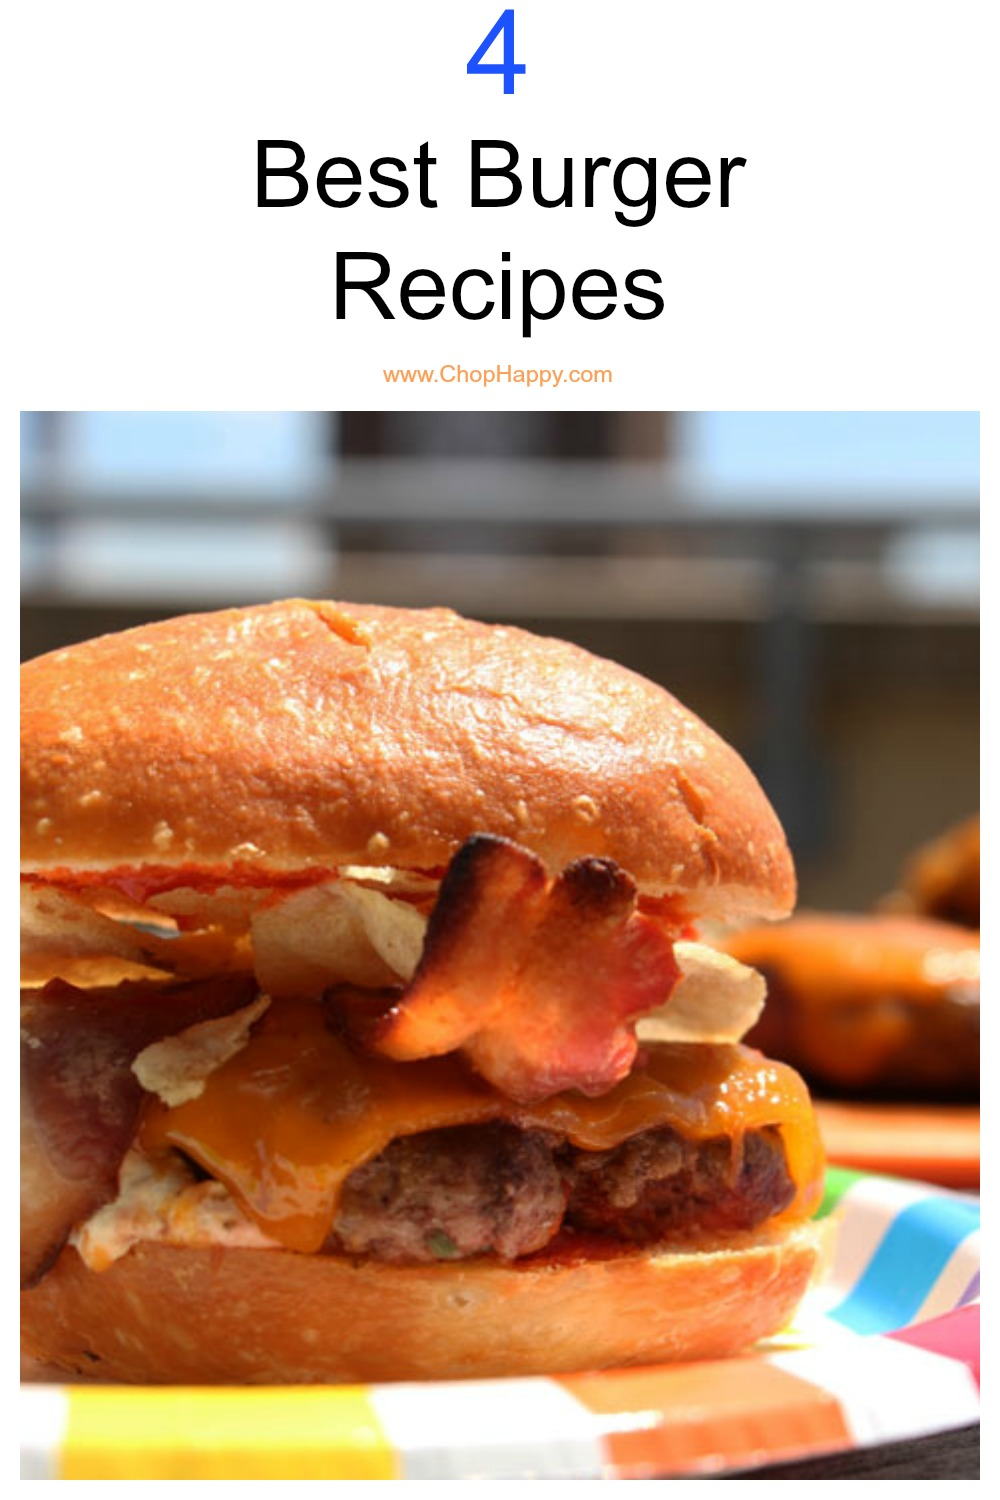 Top 4 Best Burger Recipes